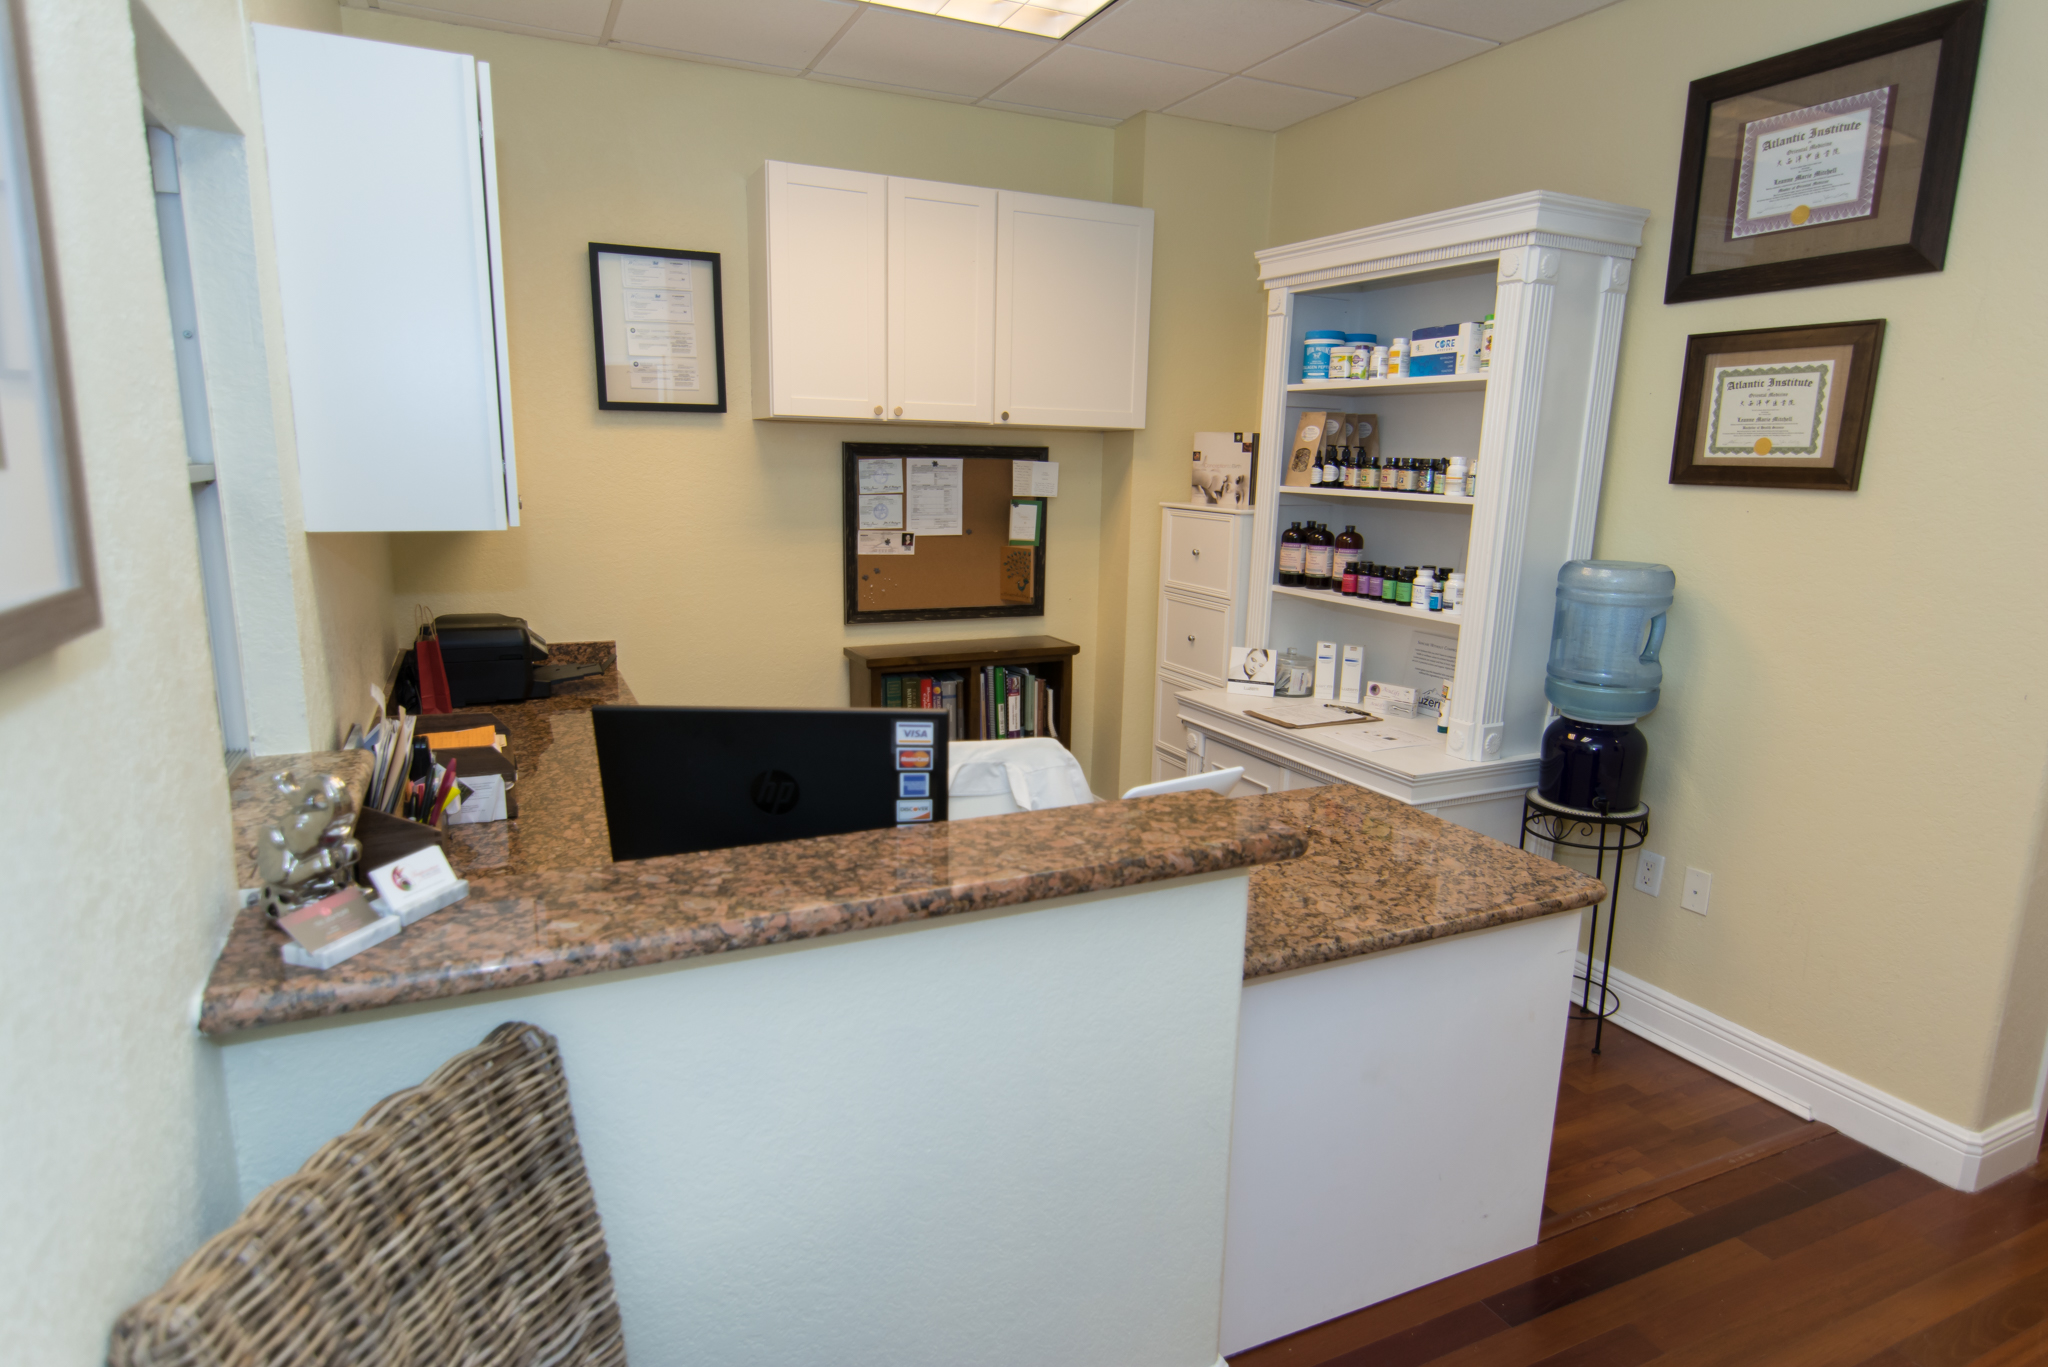 acupuncture & wellness of the palm beaches- front desk